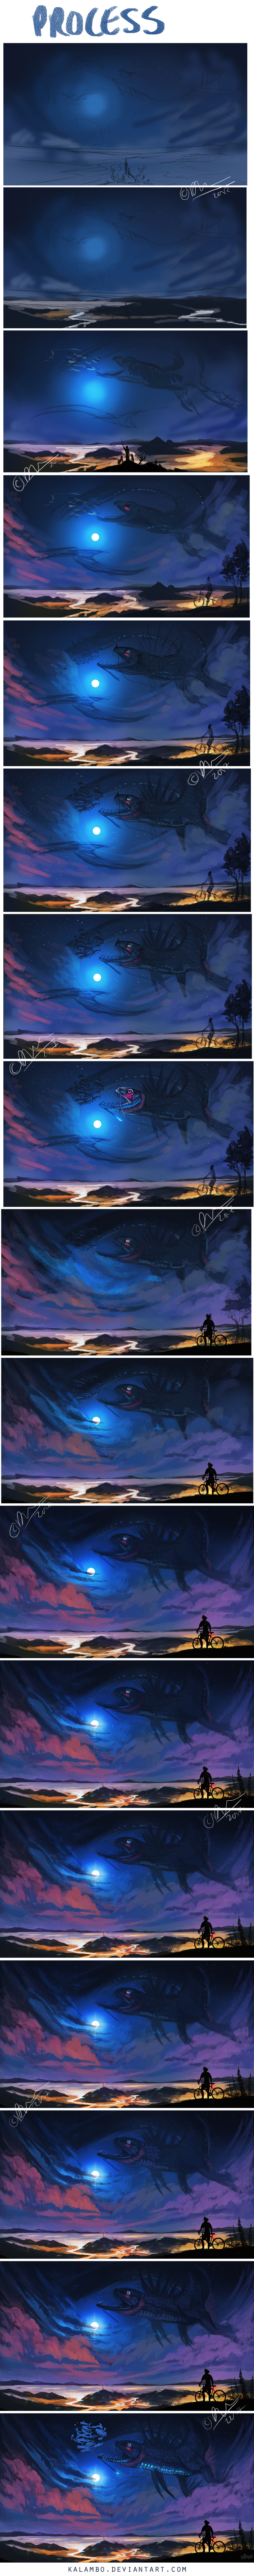 A Town with a View - PROCESS by kalambo